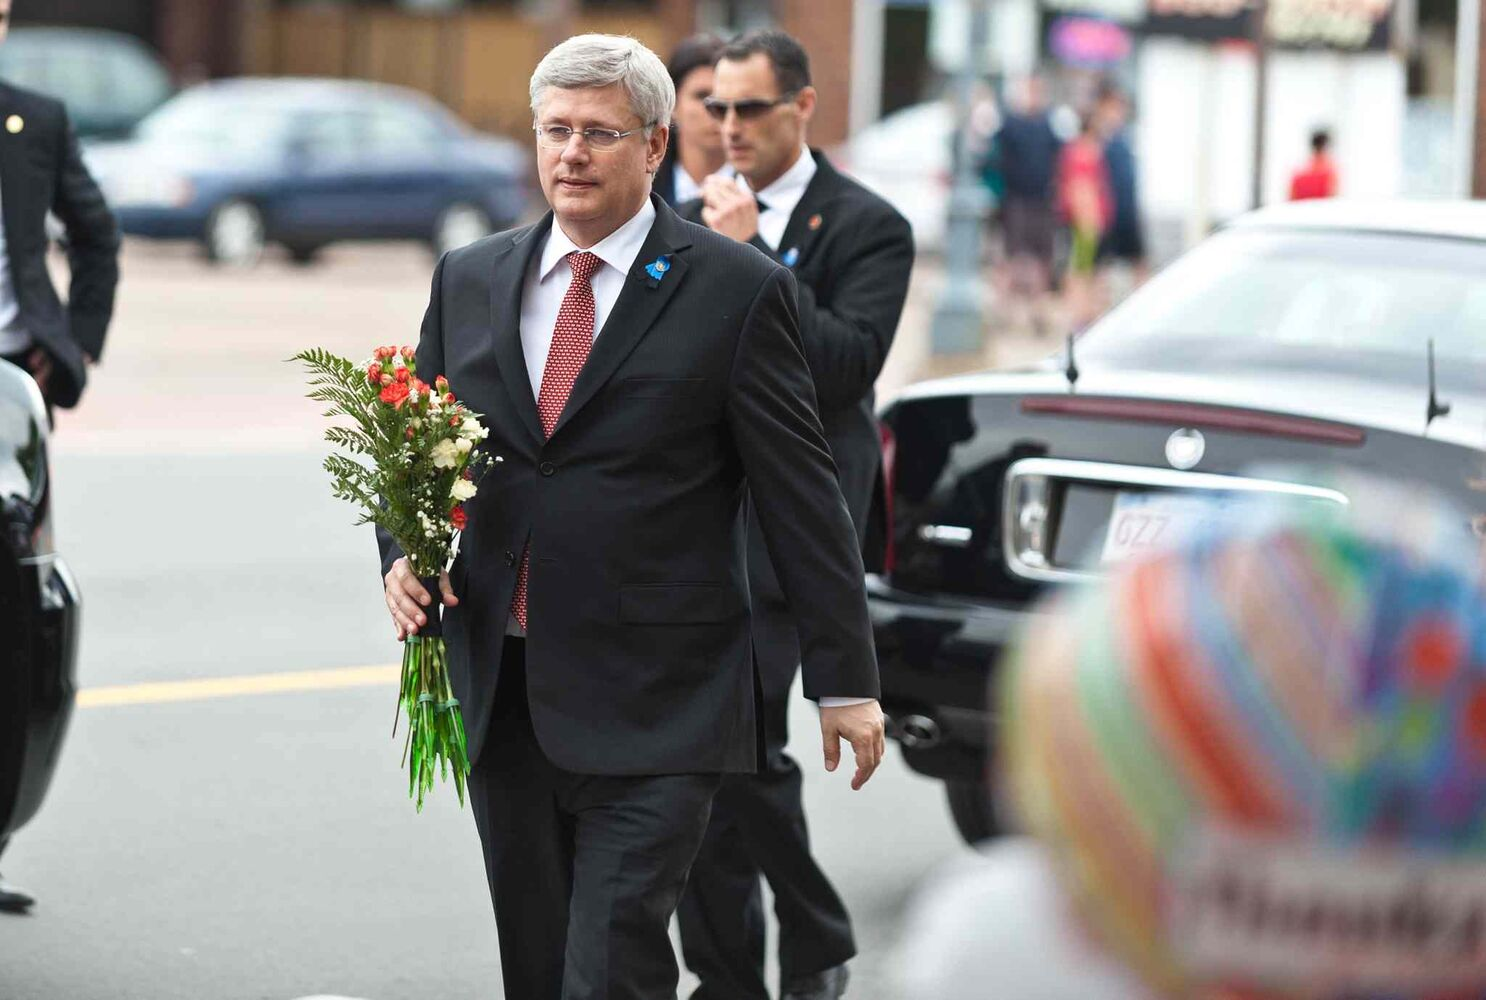 Prime Minister Steven Harper delivers flowers to the RCMP Headquarters in Moncton, N.B., following the regimental funeral for three slain RCMP officers.  (Marc Grandmaison / The Canadian Press)